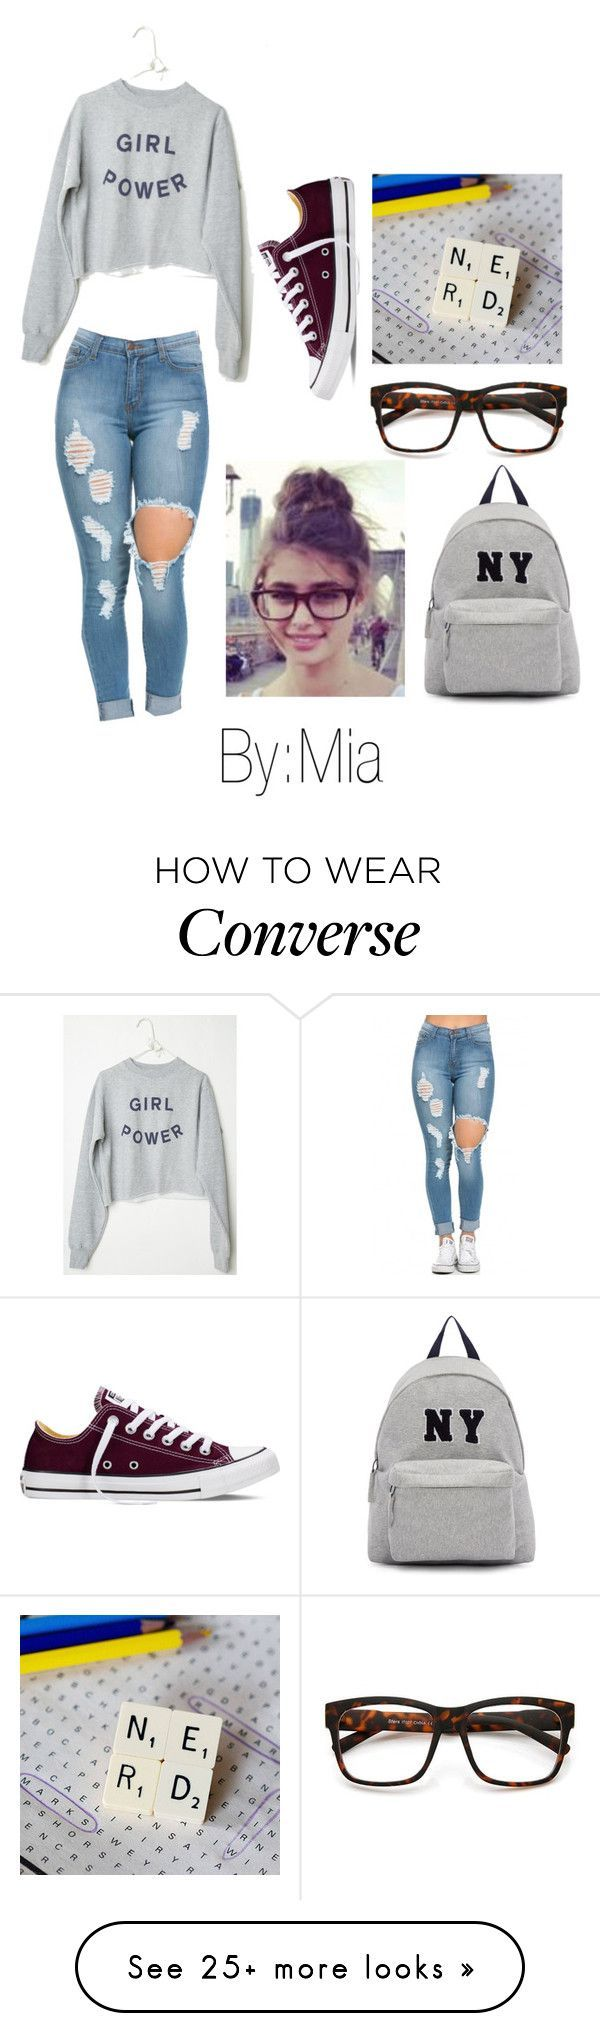 """""""Girl nerd power ✌️"""" by cookiejoint on Polyvore featuring Converse, Joshua's, women's clothing, women, female, woman, misses and juniors"""